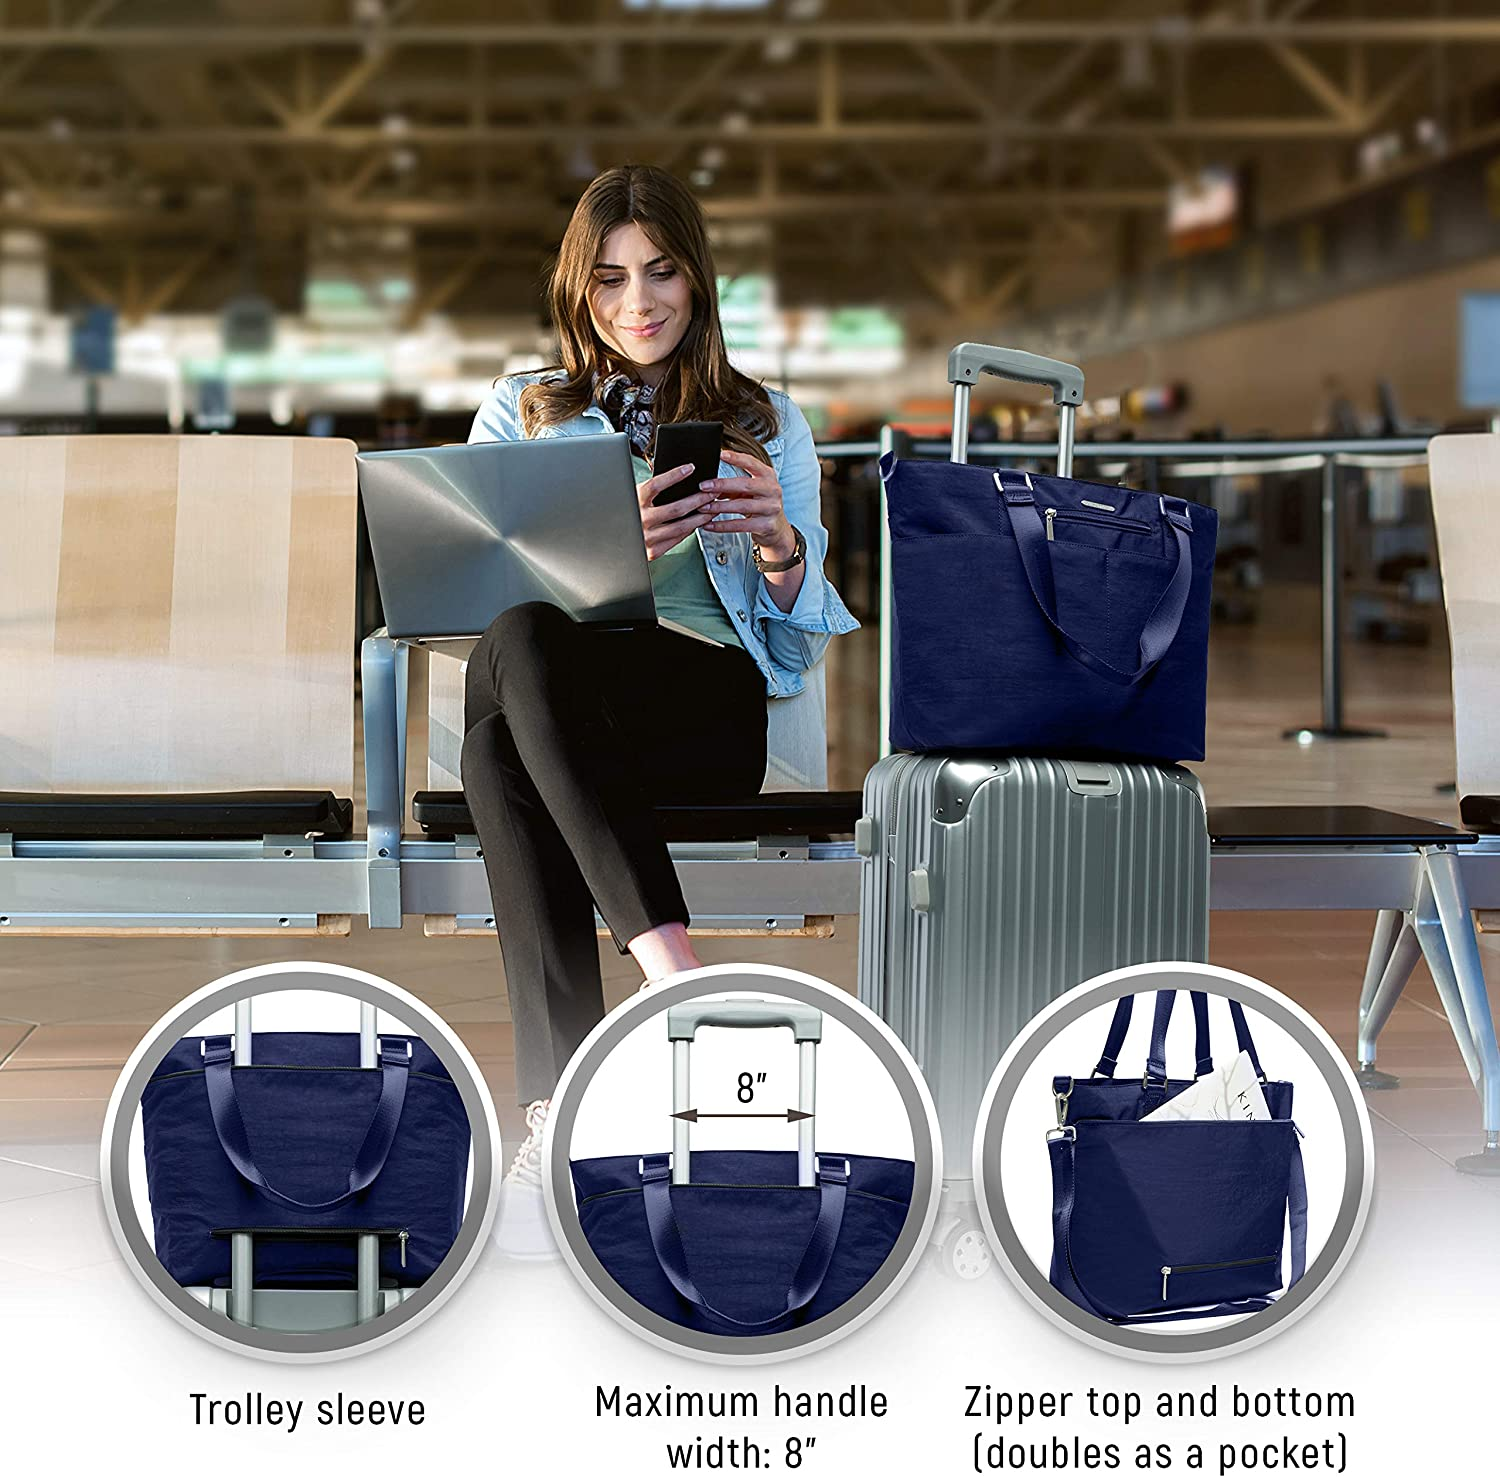 Laptop Sleeve Luggage Strap Nylon Crossbody Bag for Women with Shoulder Strap